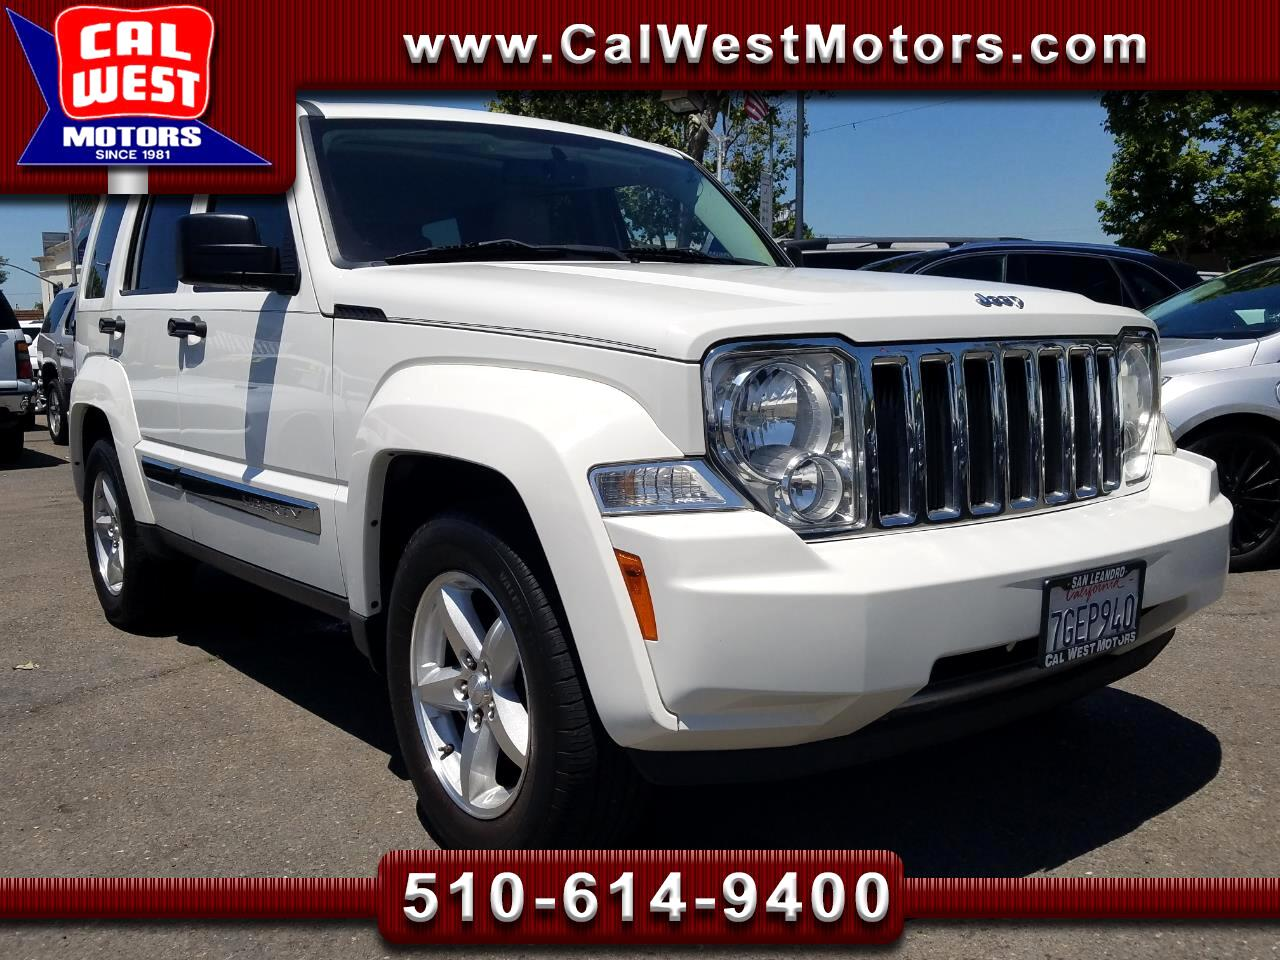 2009 Jeep Liberty Limited 4WD SUV TrailRated MnRoof Blu2th ExprtMain